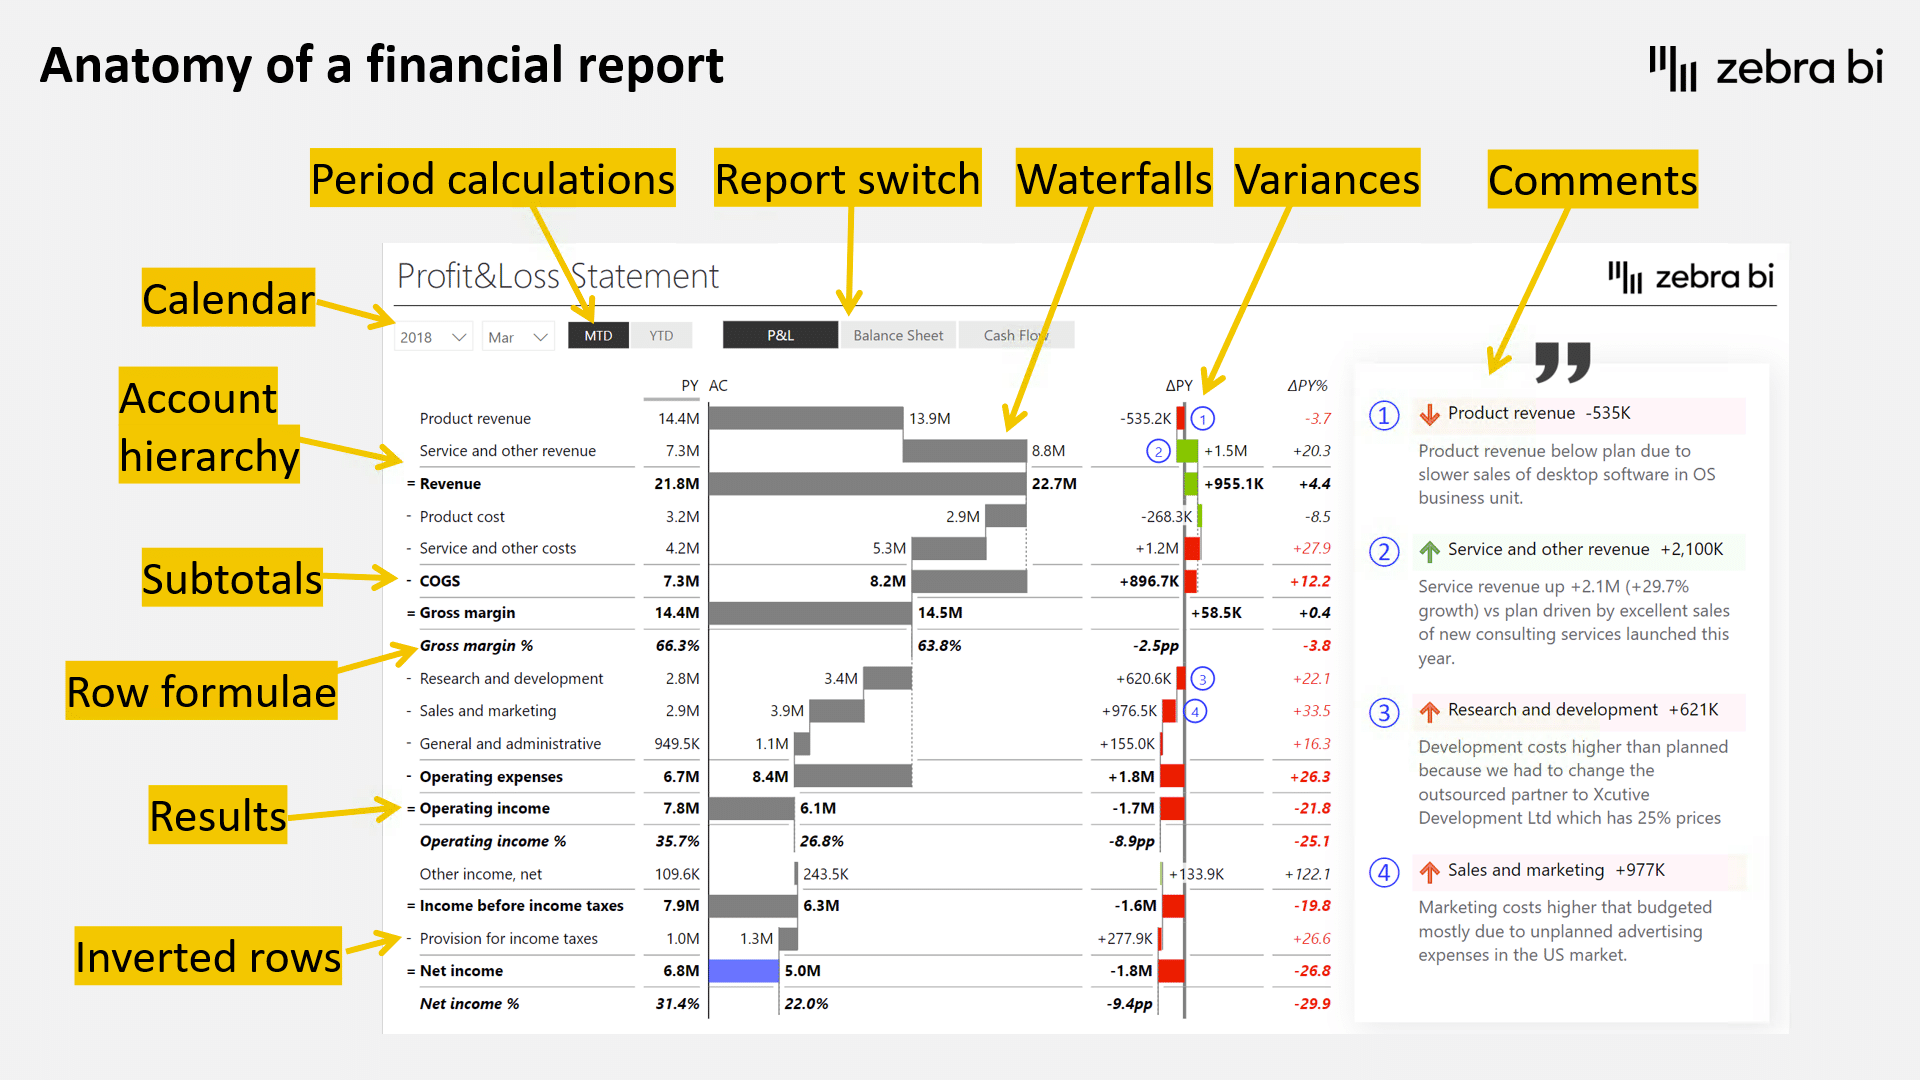 The anatomy of a financial report (income statement in Power BI)